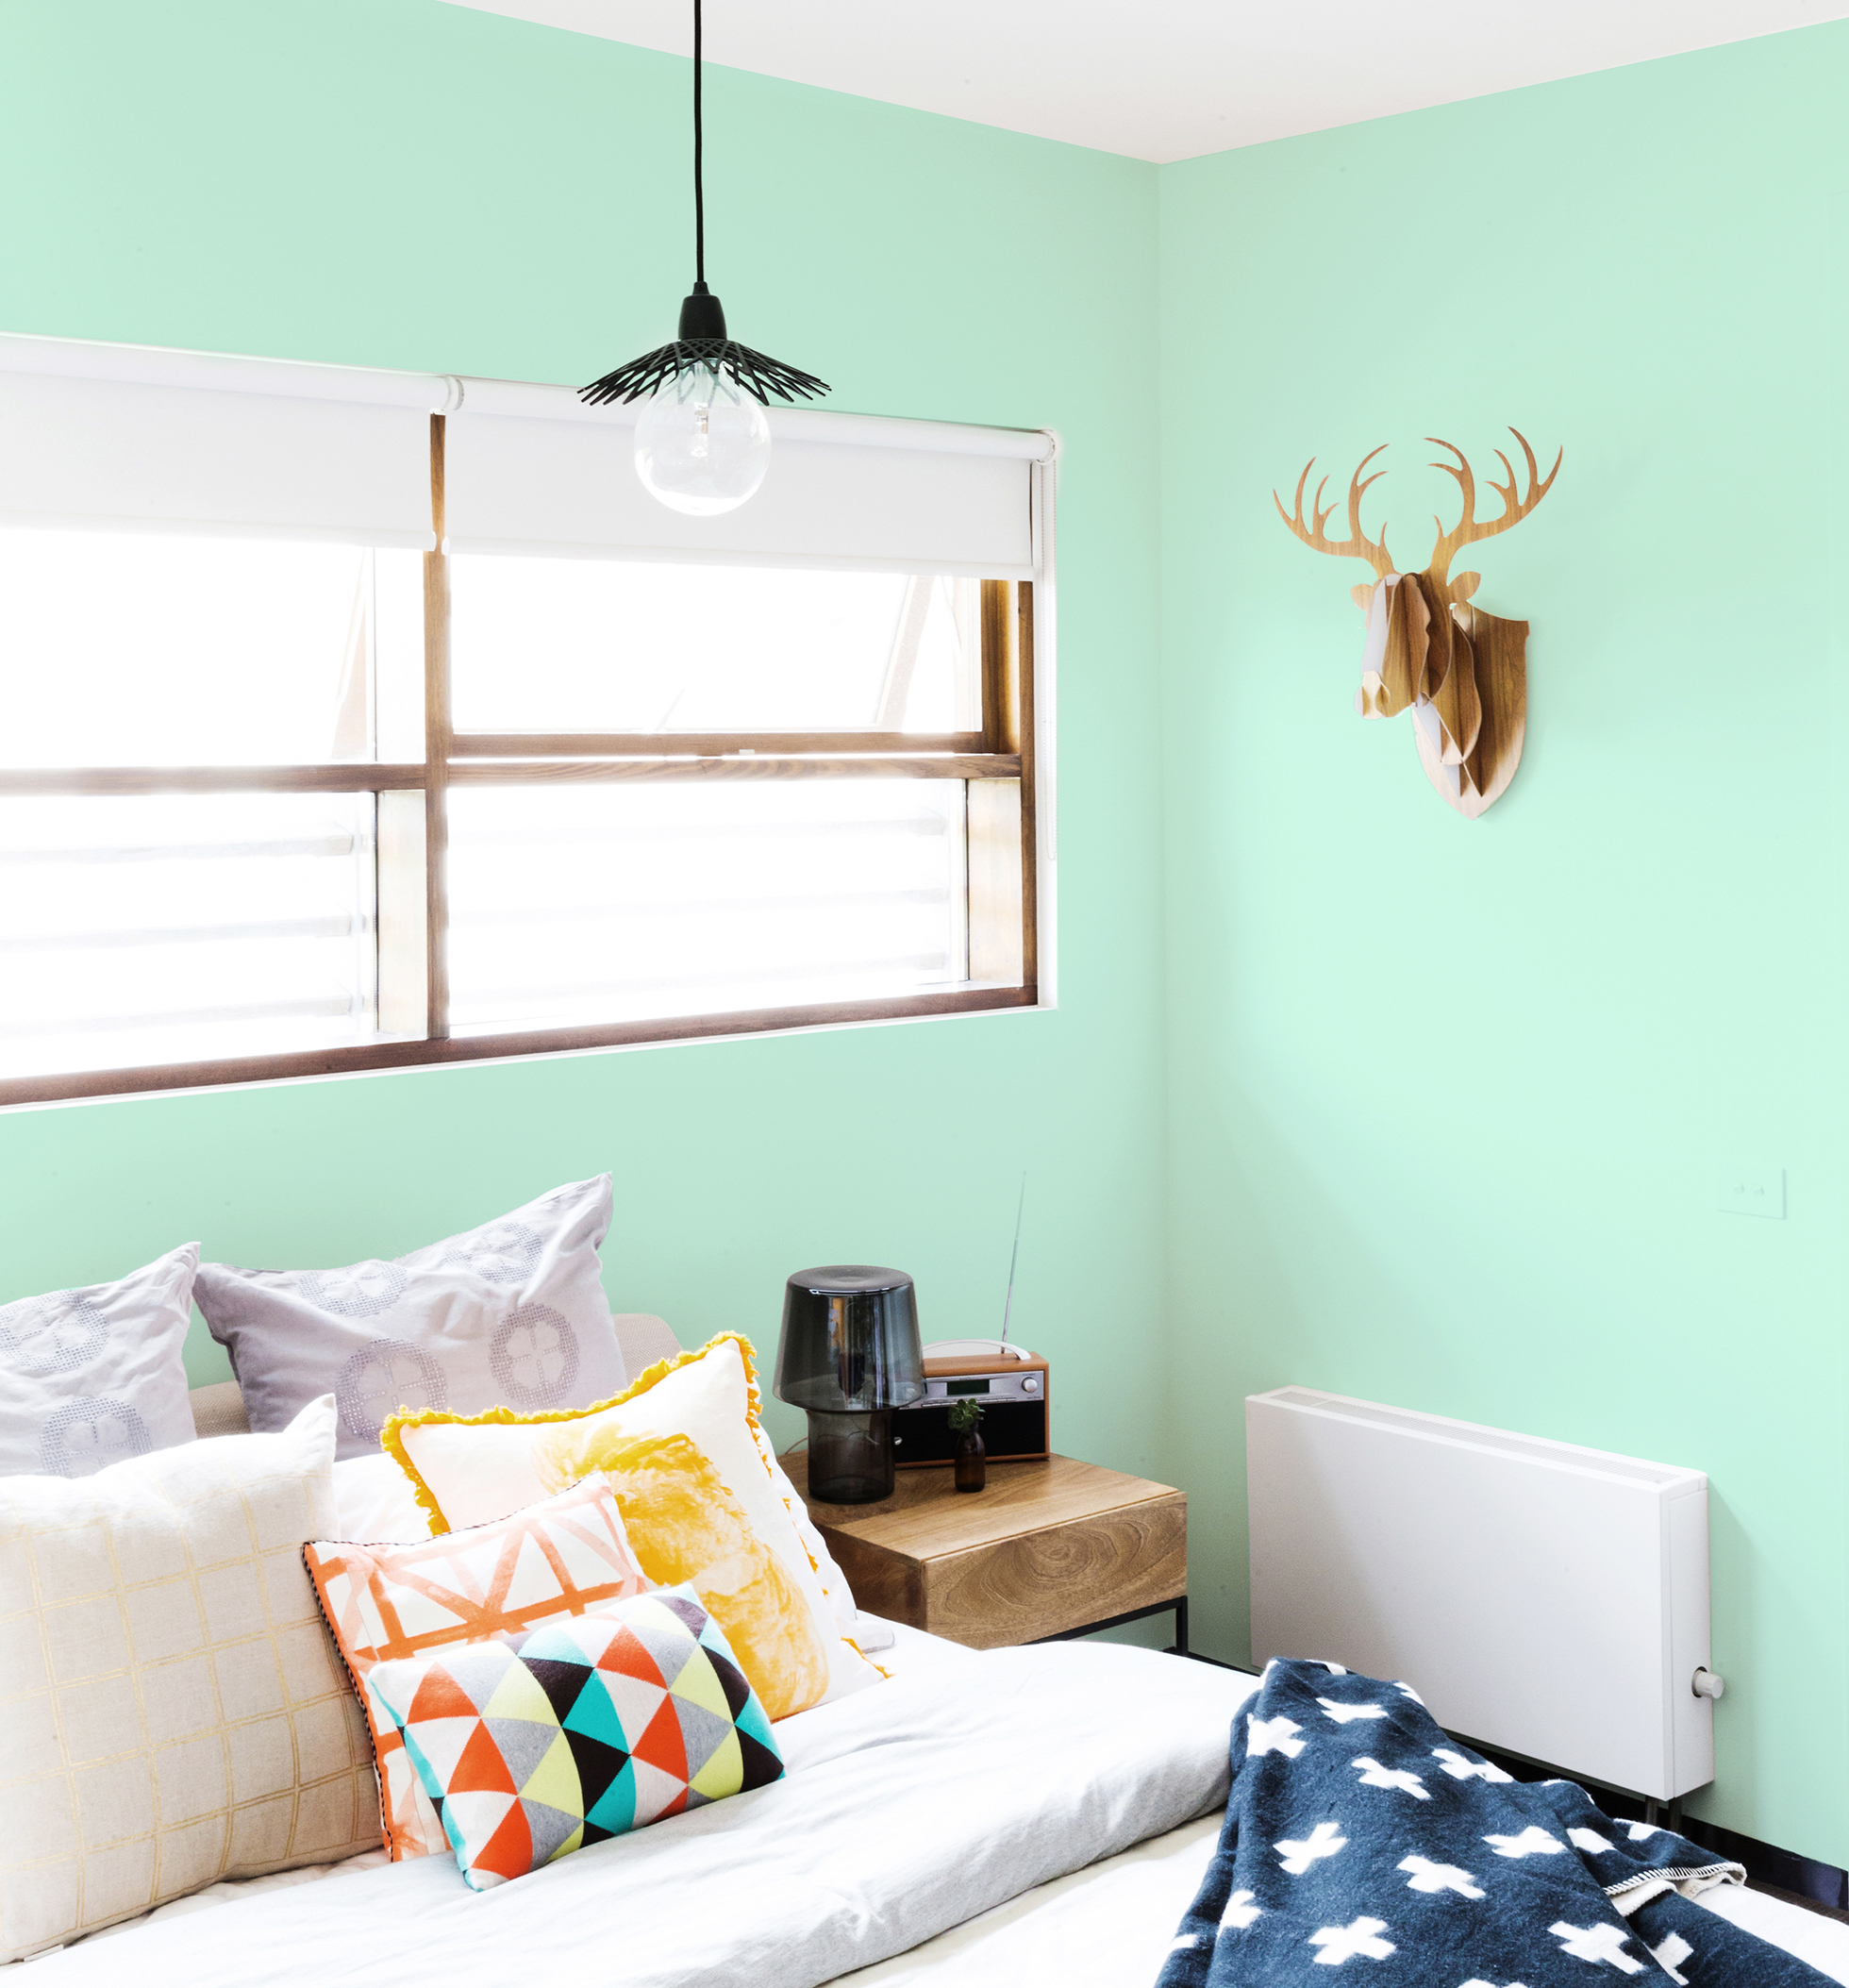 Green bedroom with large window and cardboard deer head